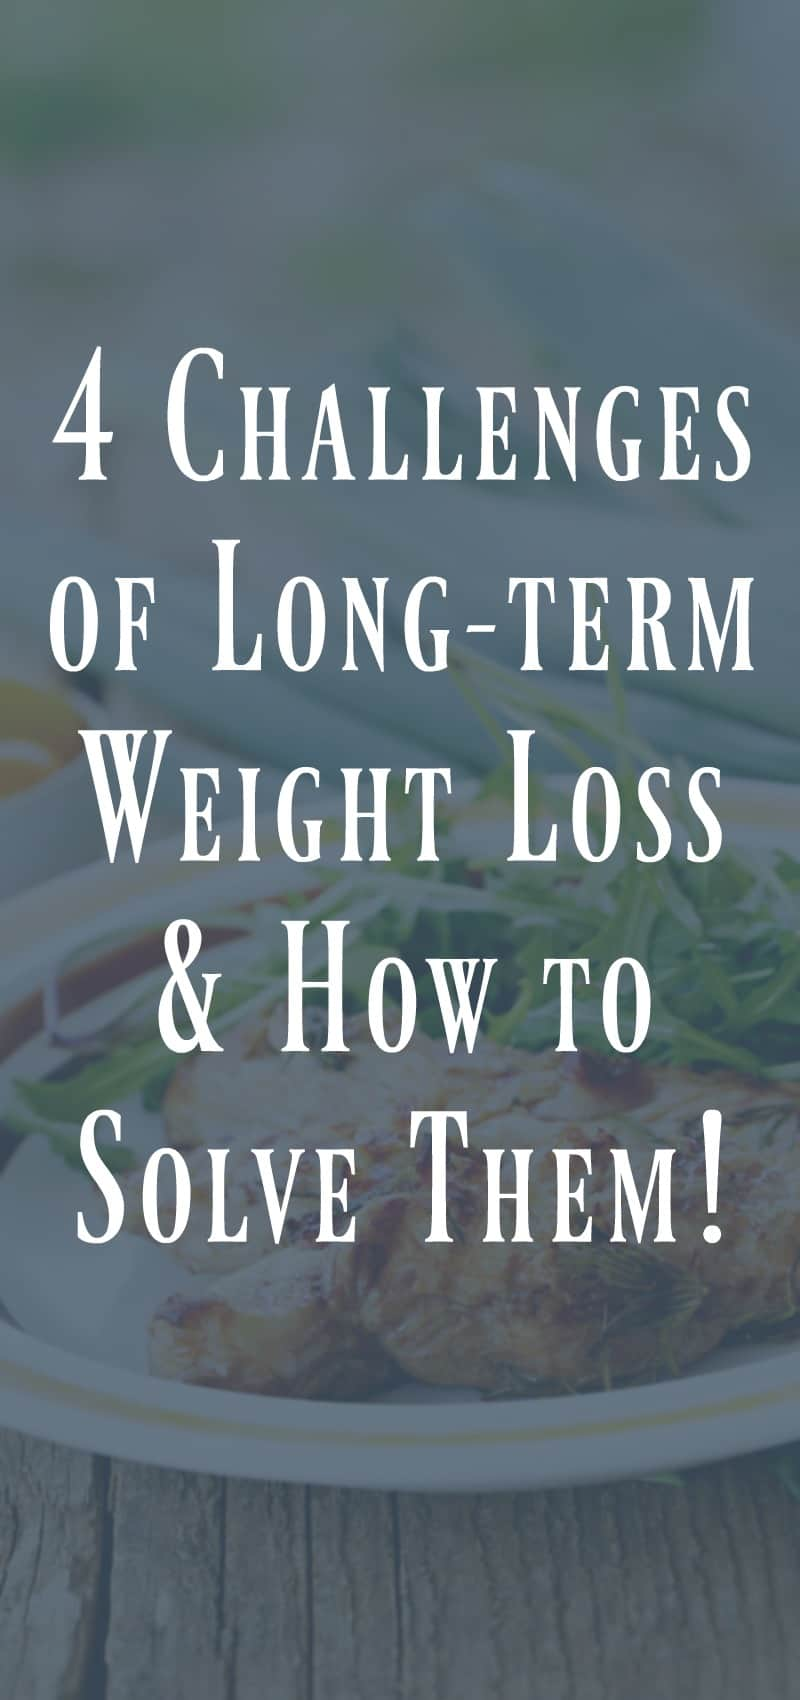 4 Challenges of Long-term Weight Loss and How to Solve Them